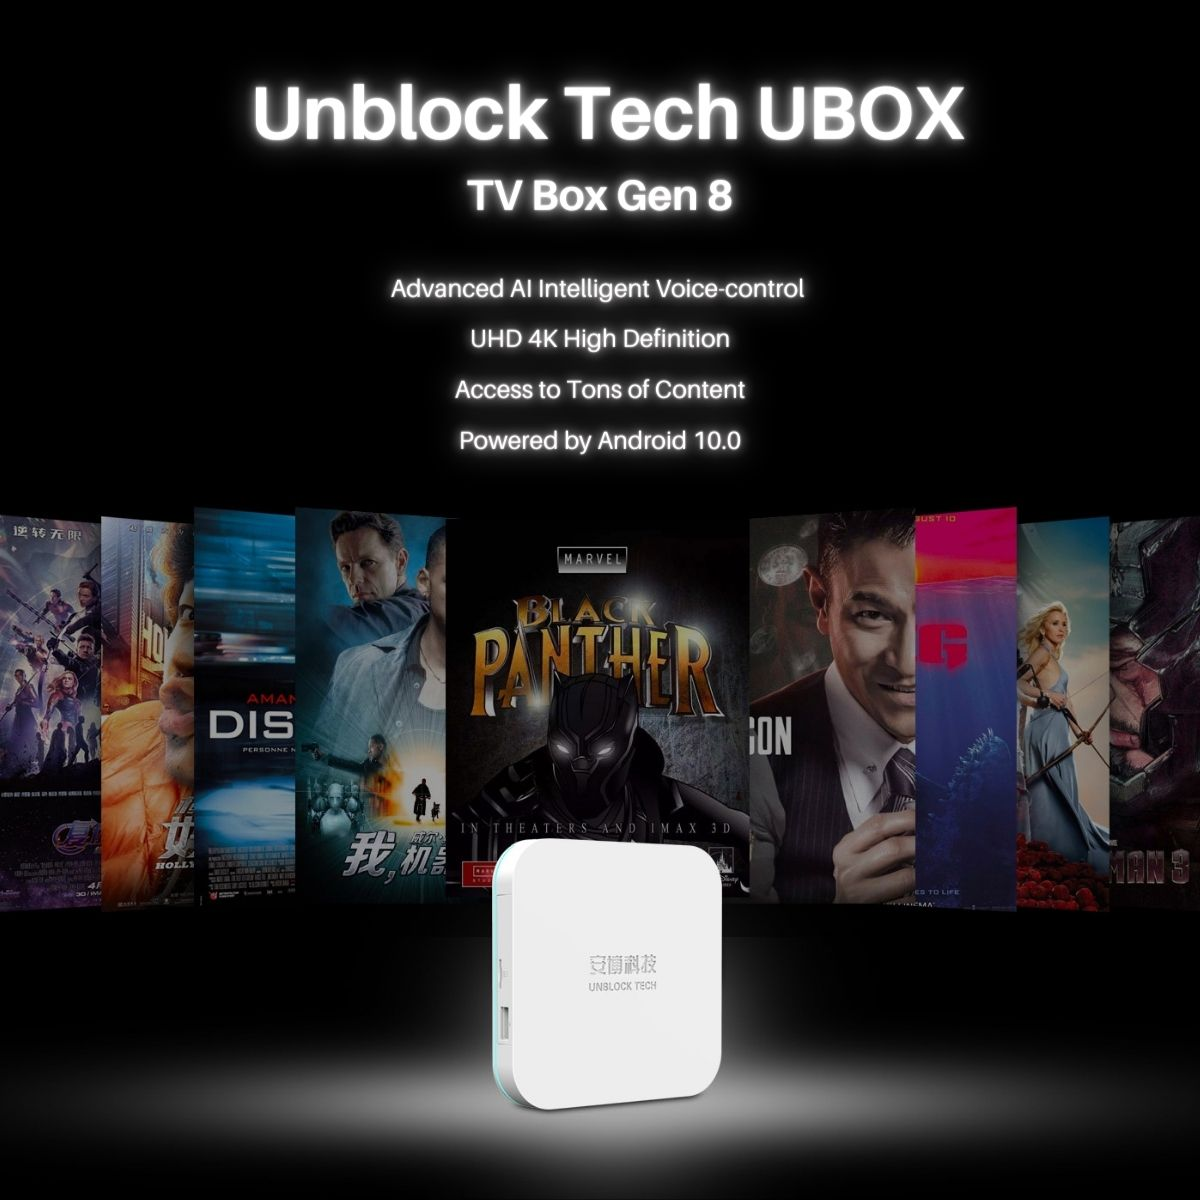 Unblock-Ubox8-Super-TVbox-Advanced AI Intelligent Voice-control  UHD 4K High Definition Access to Tons of Content Powered by Android 10.0